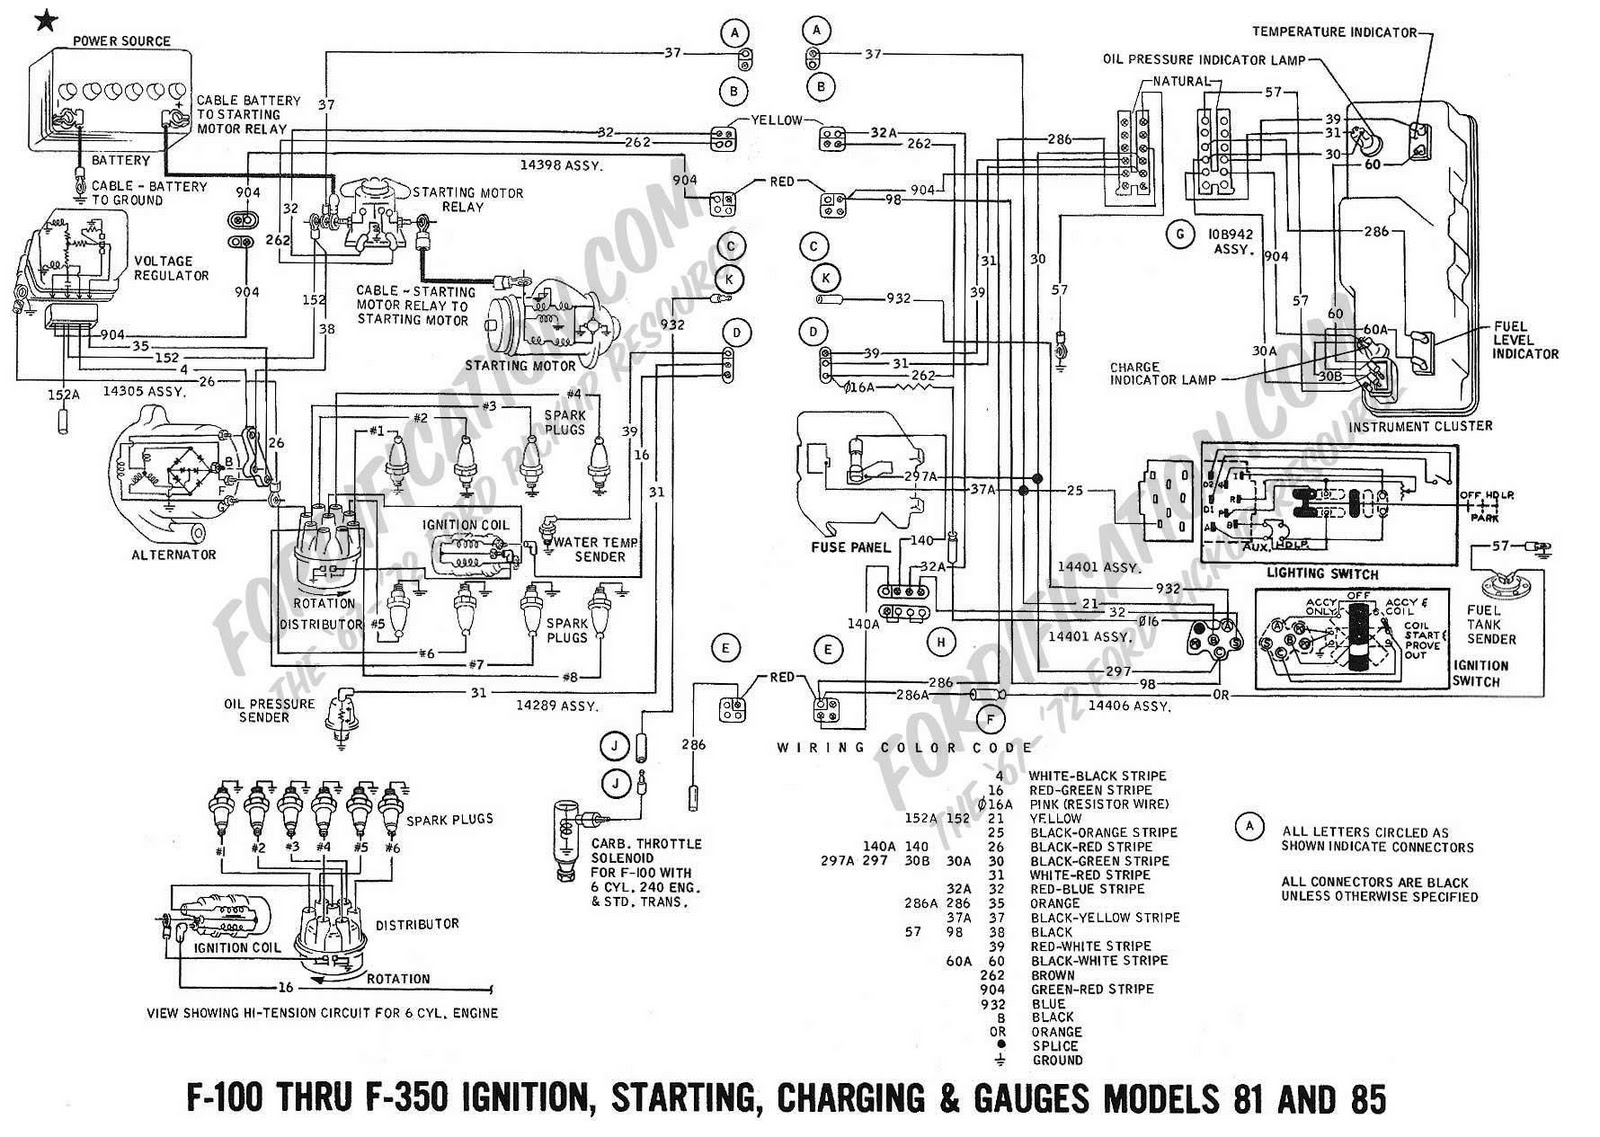 1969 Ford F100-F350 Ignition, Starting, Charging, And